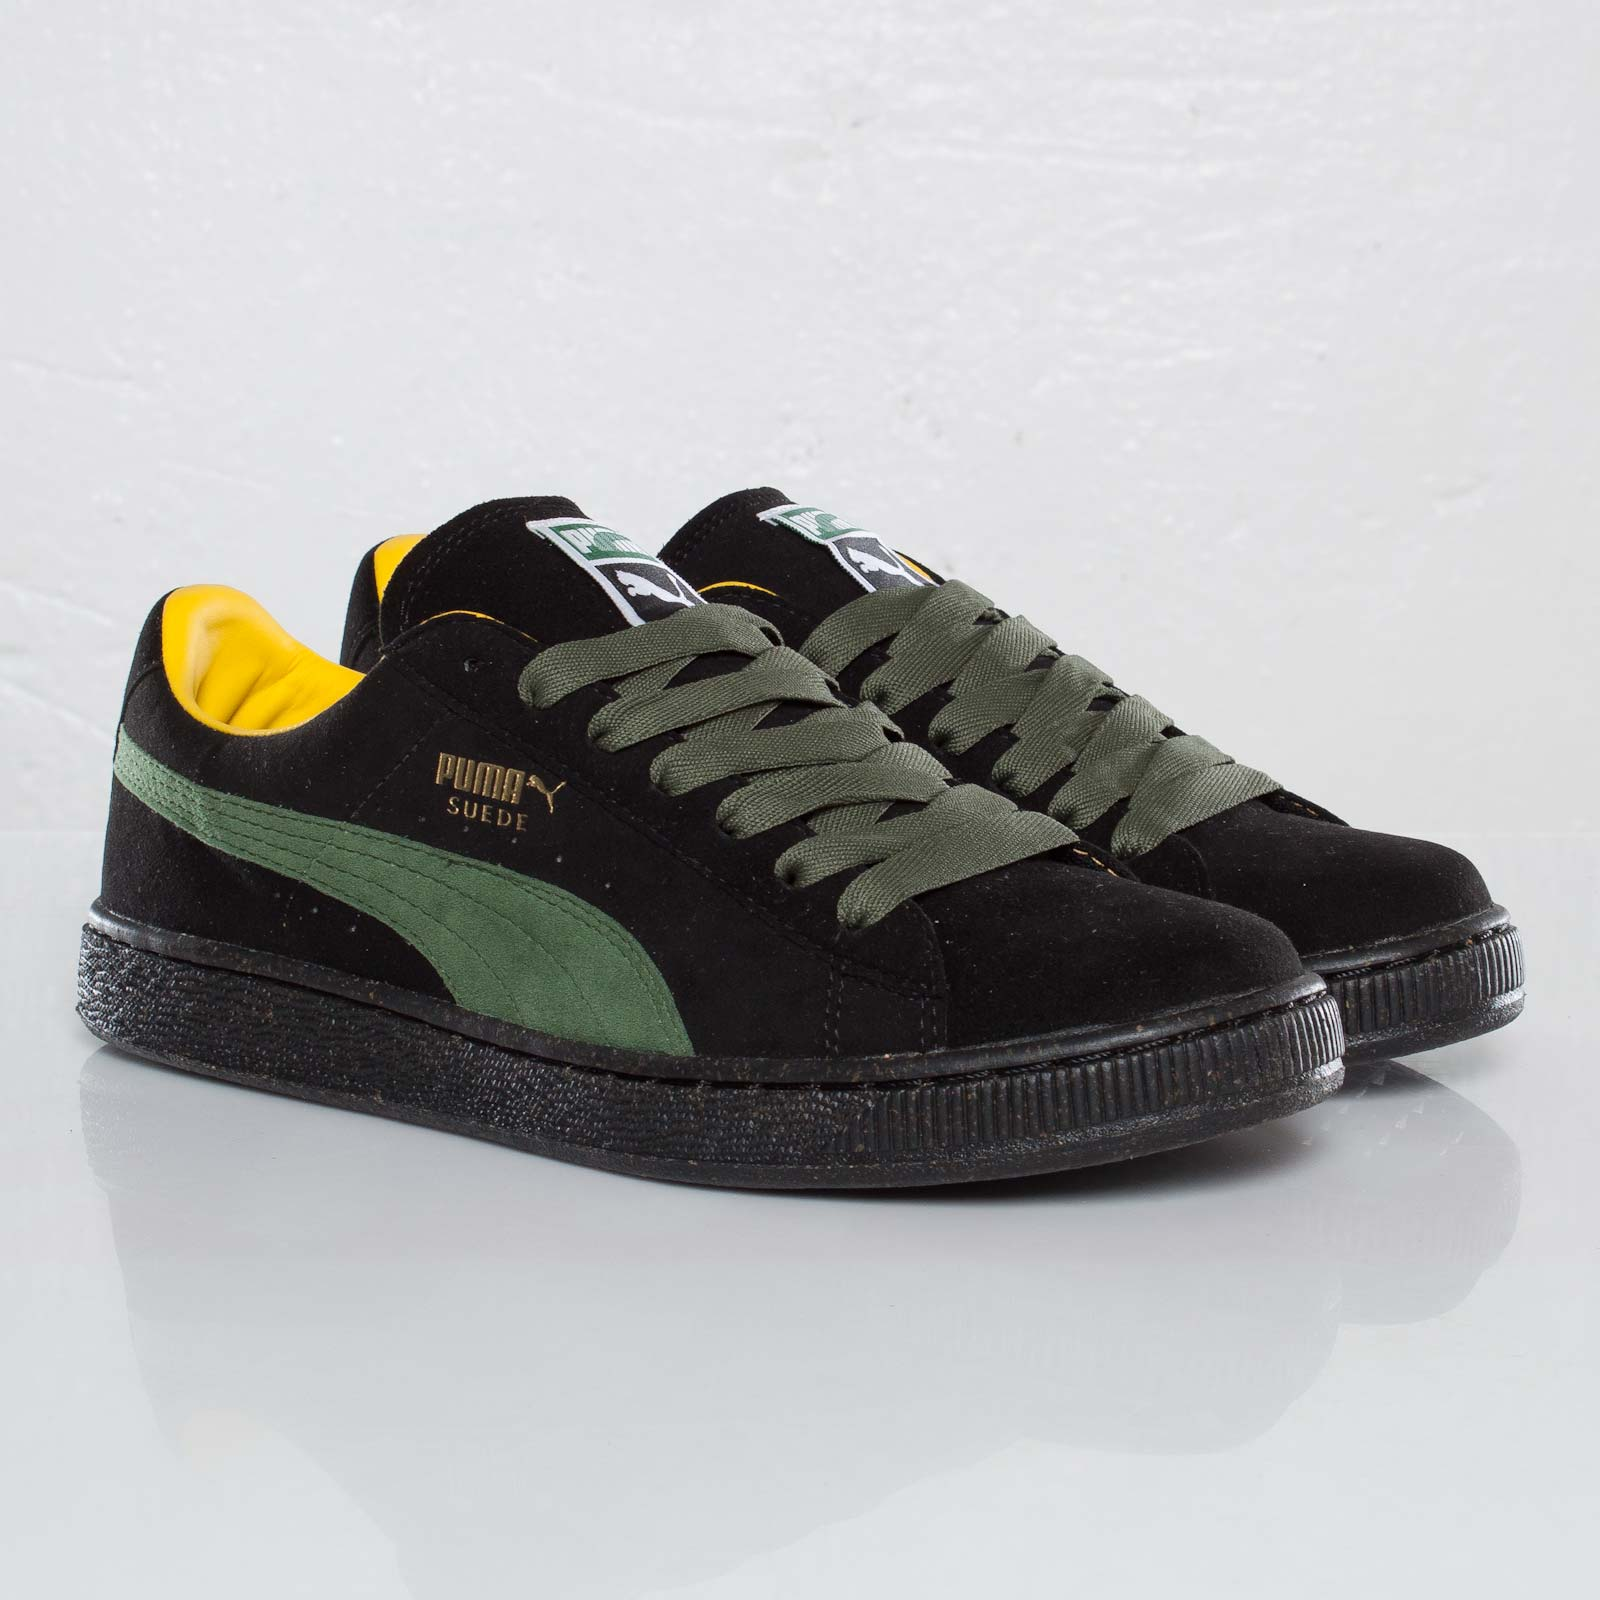 64b8f911bb9 Puma Re-Suede - 111203 - Sneakersnstuff